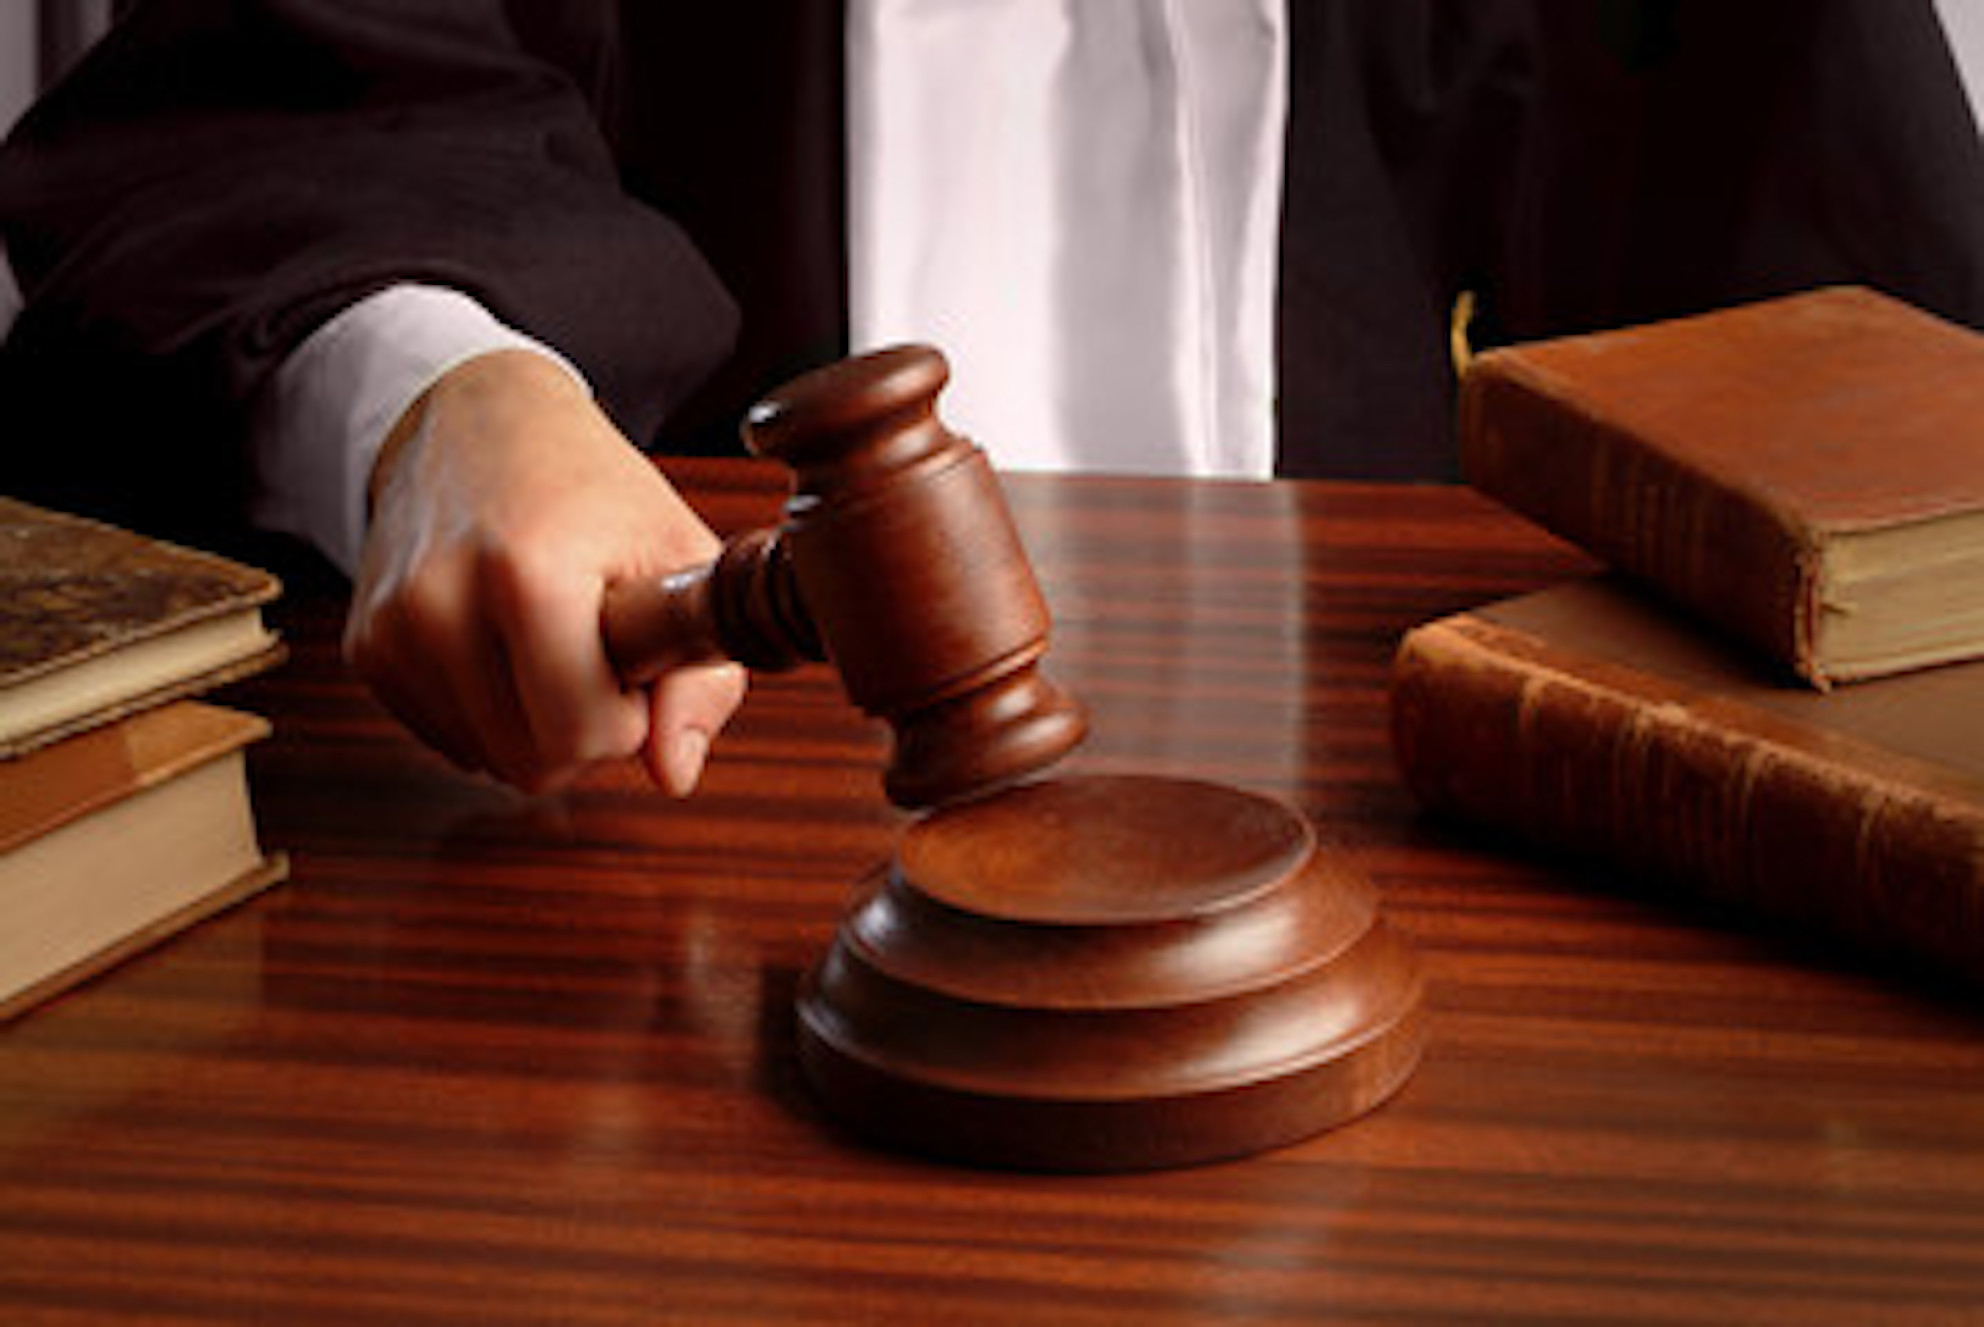 Acquittal by Delhi Court in Dowry Death Case